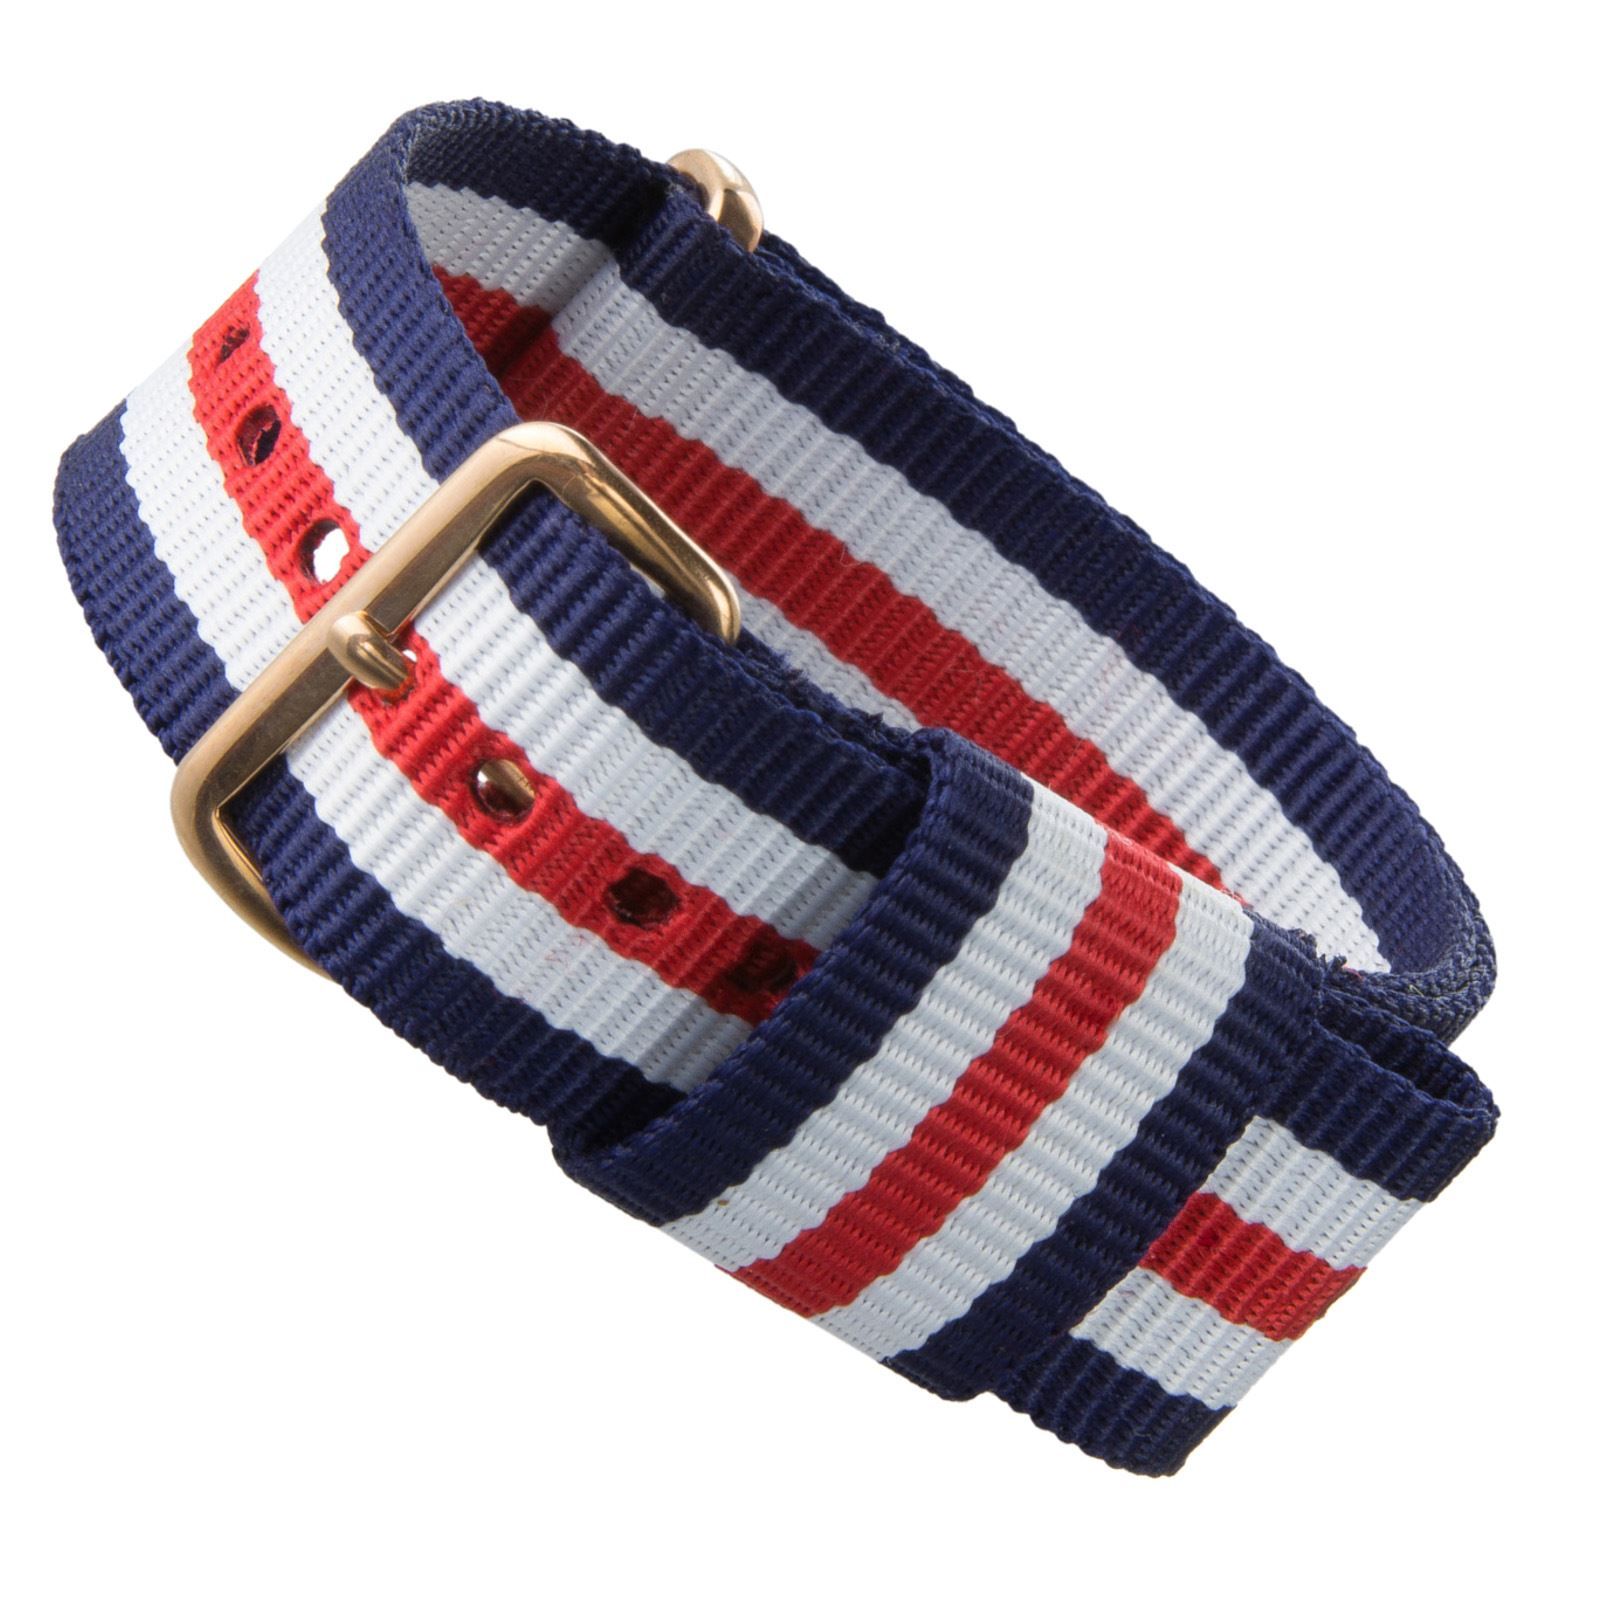 One Piece Replacement Nylon Watch Strap for Men's Daniel Wellington Watch 20mm